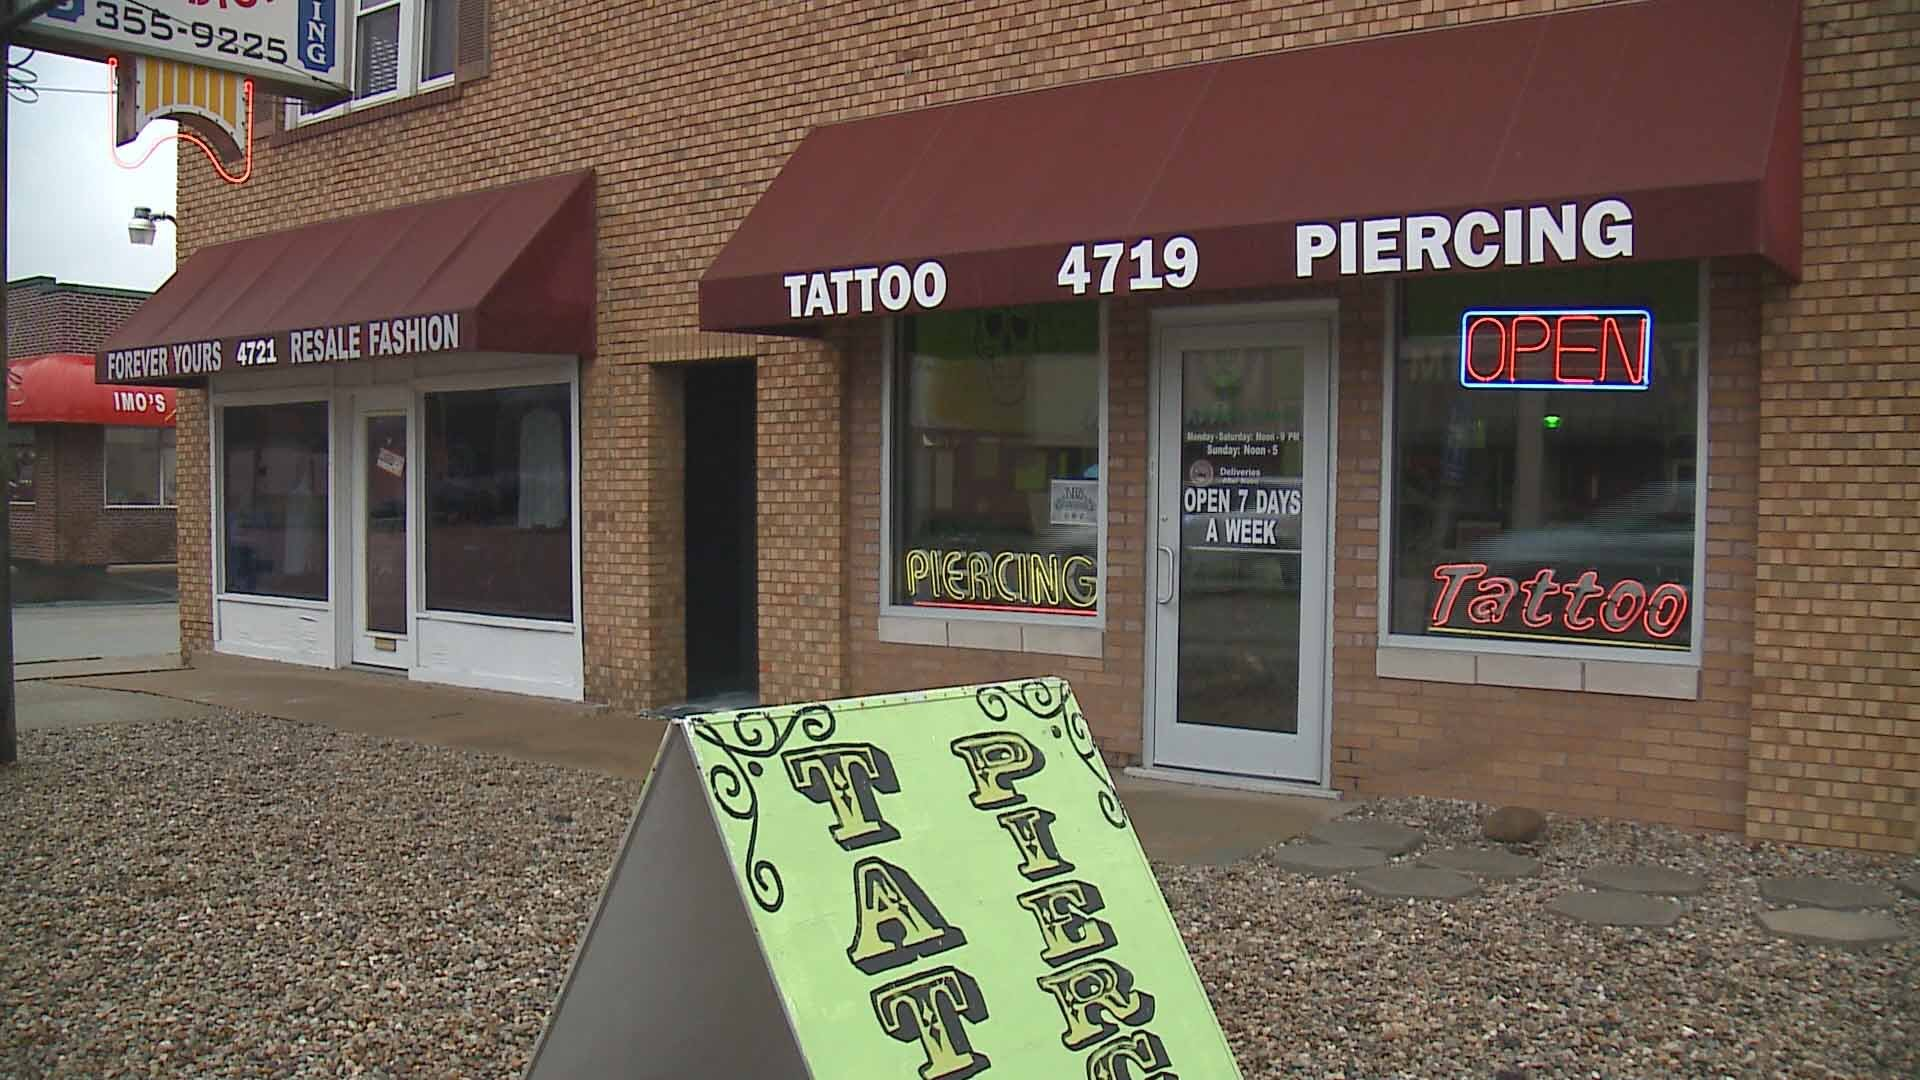 Tattoo parlors would be among the business subject to a new sales tax if a proposal in the Illinois legislature passes. Credit: KMOV